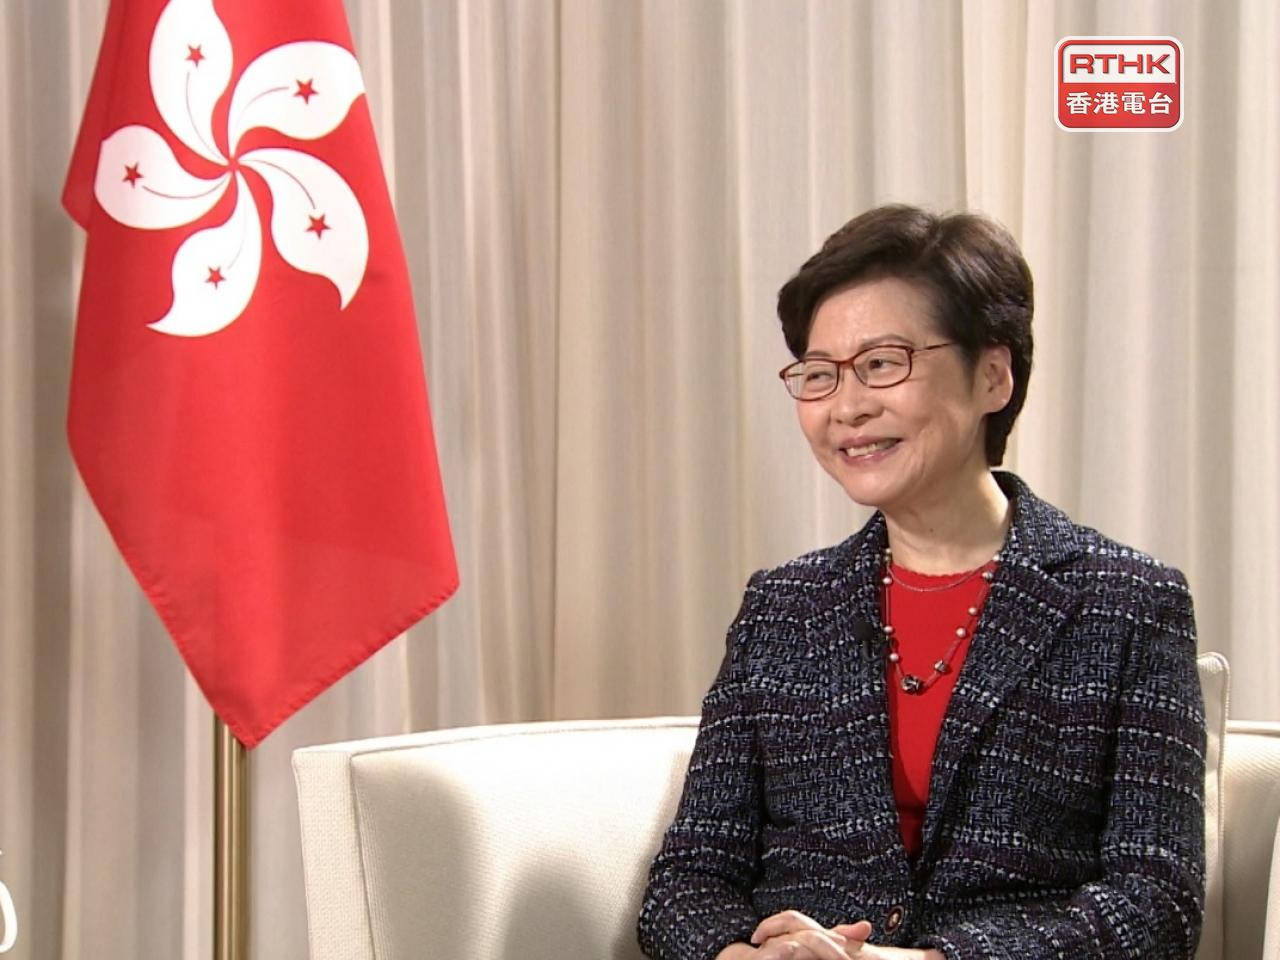 National security law affected HK's reputation: CE